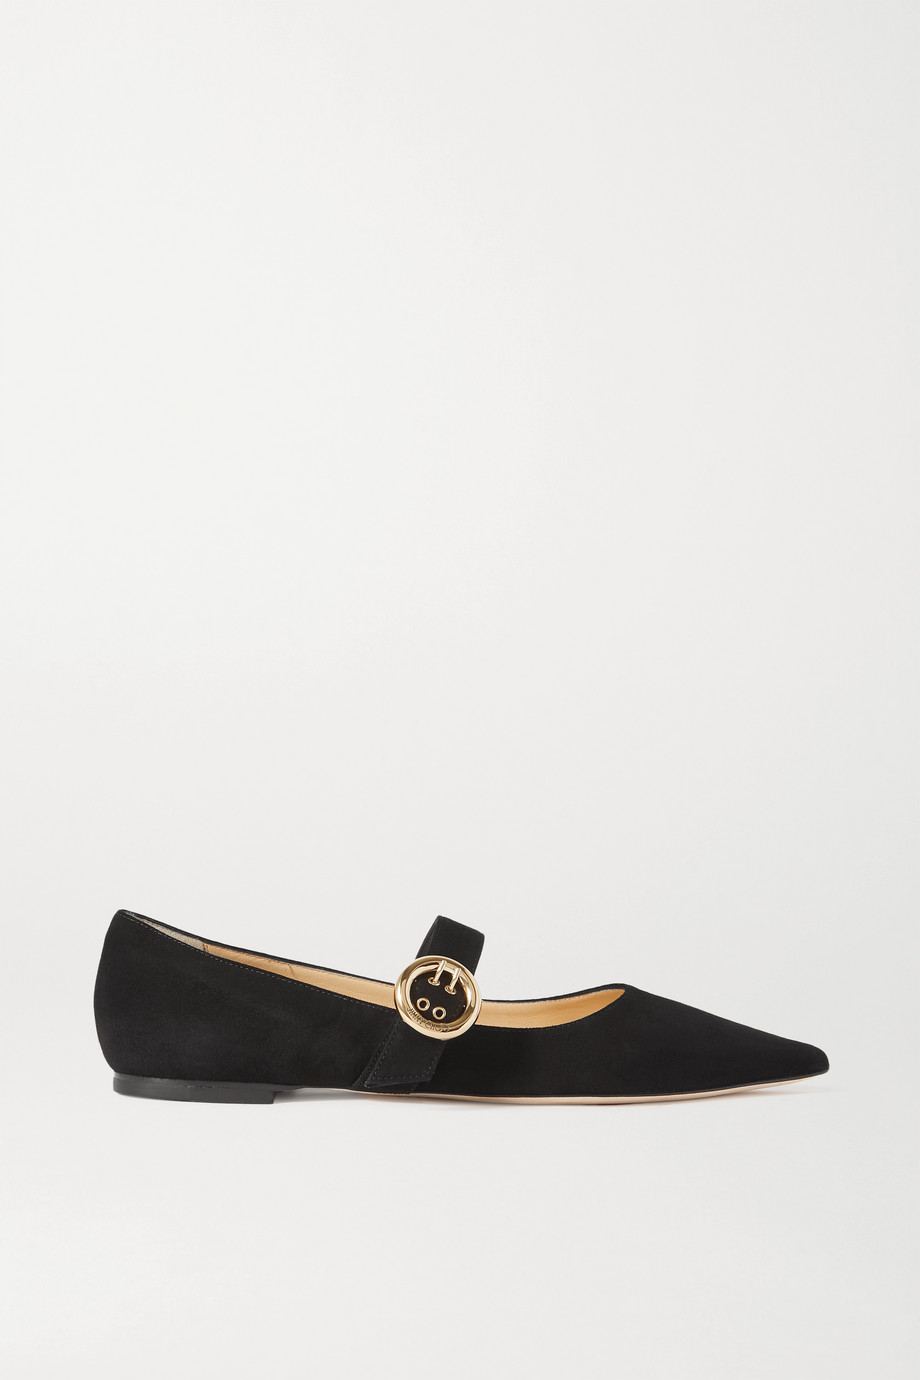 JIMMY CHOO Gela buckled suede point-toe flats